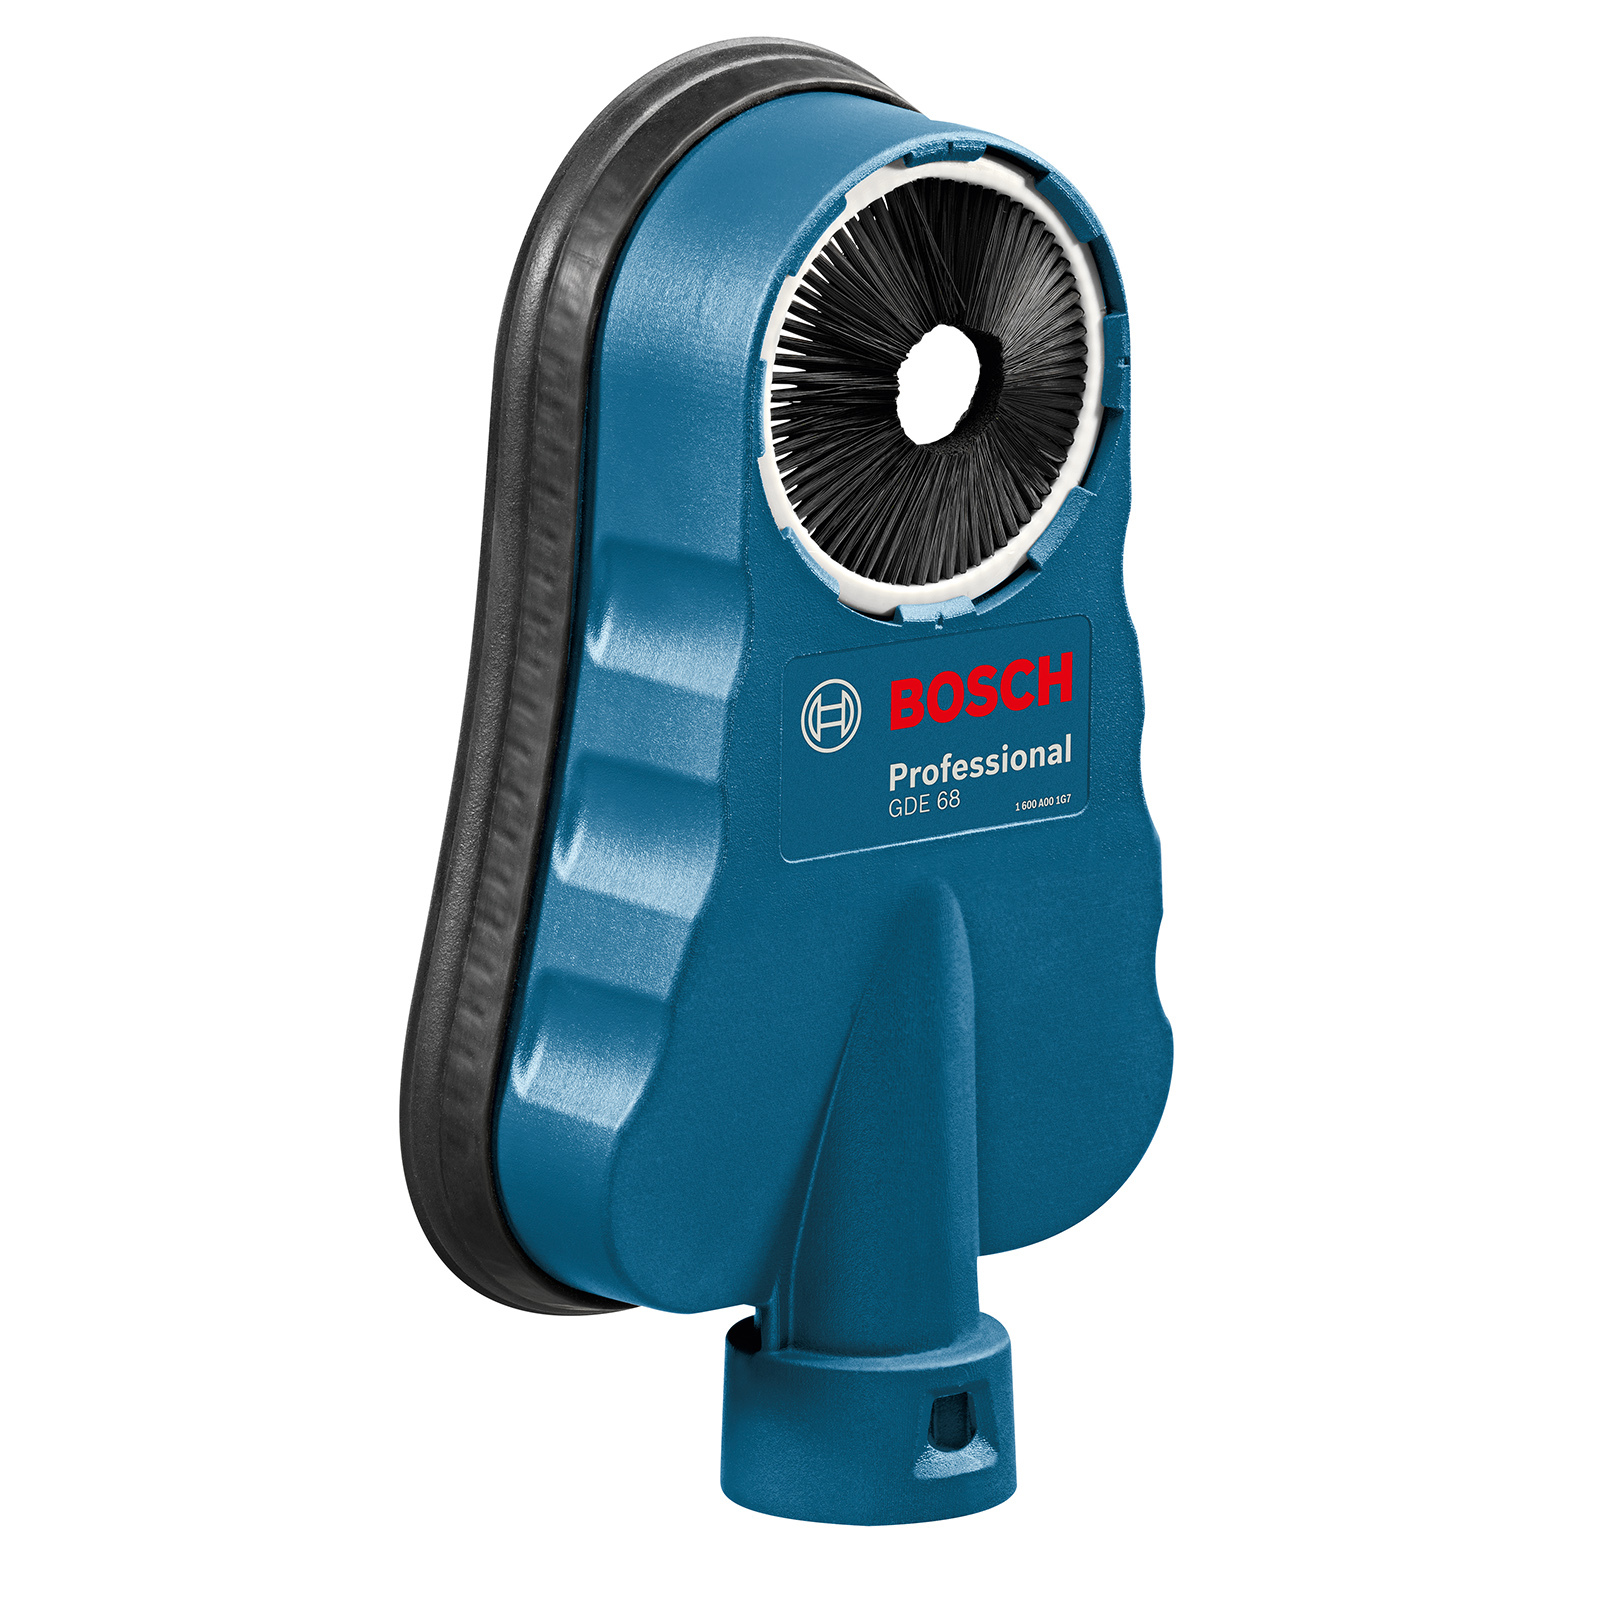 Bosch Blue GDE 68 Dust Extraction Drilling Accessory